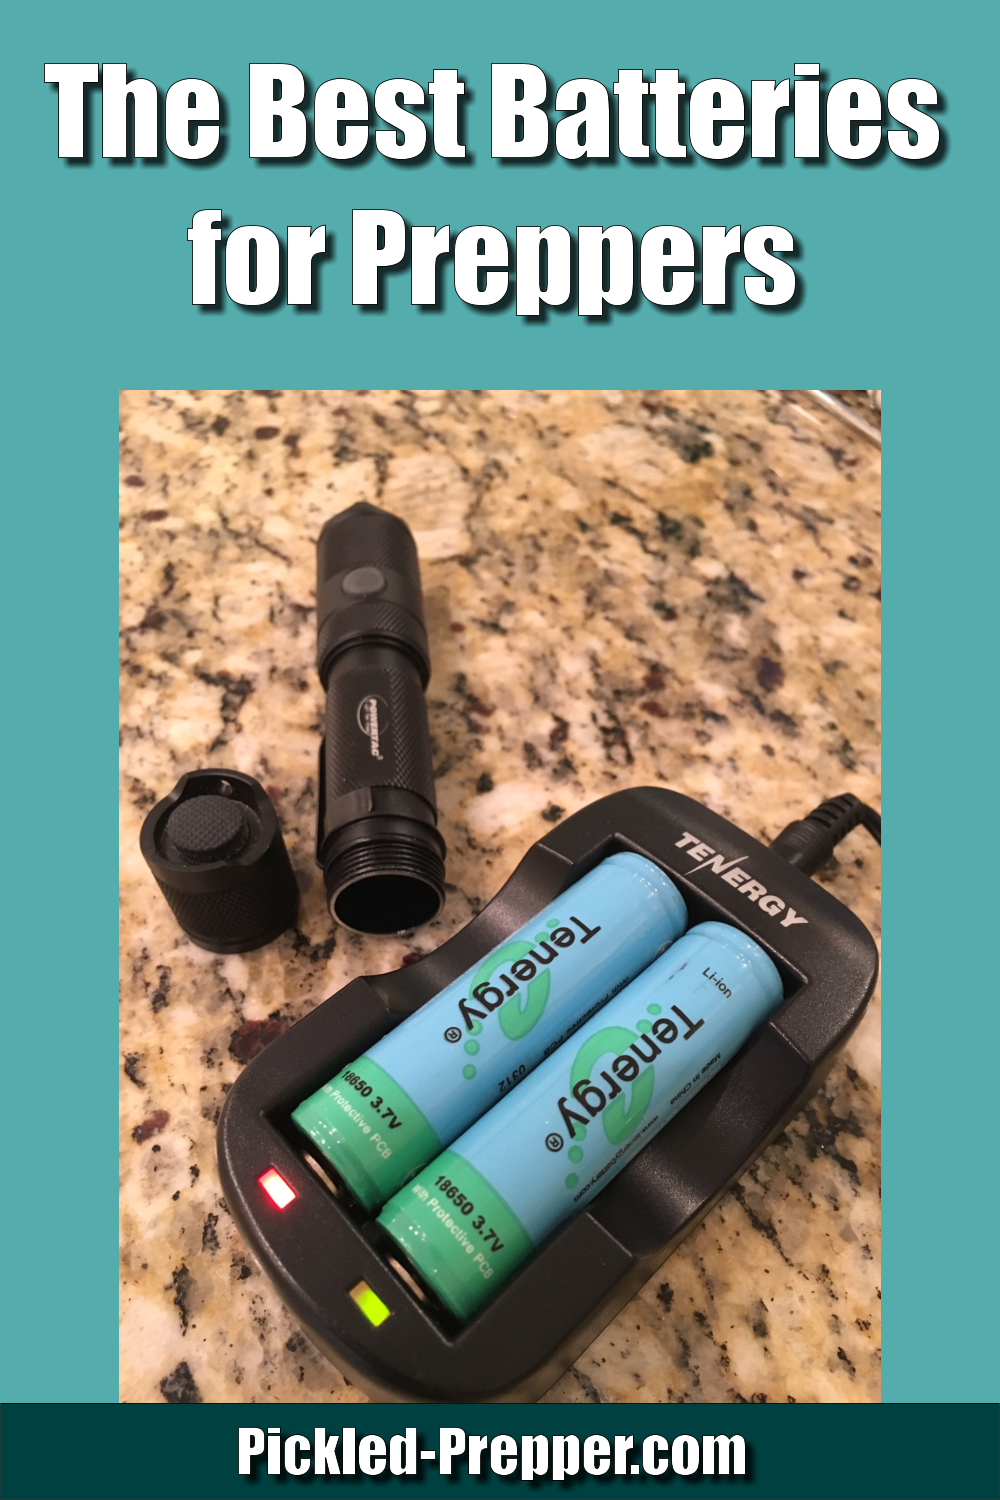 The Best Batteries for Preppers